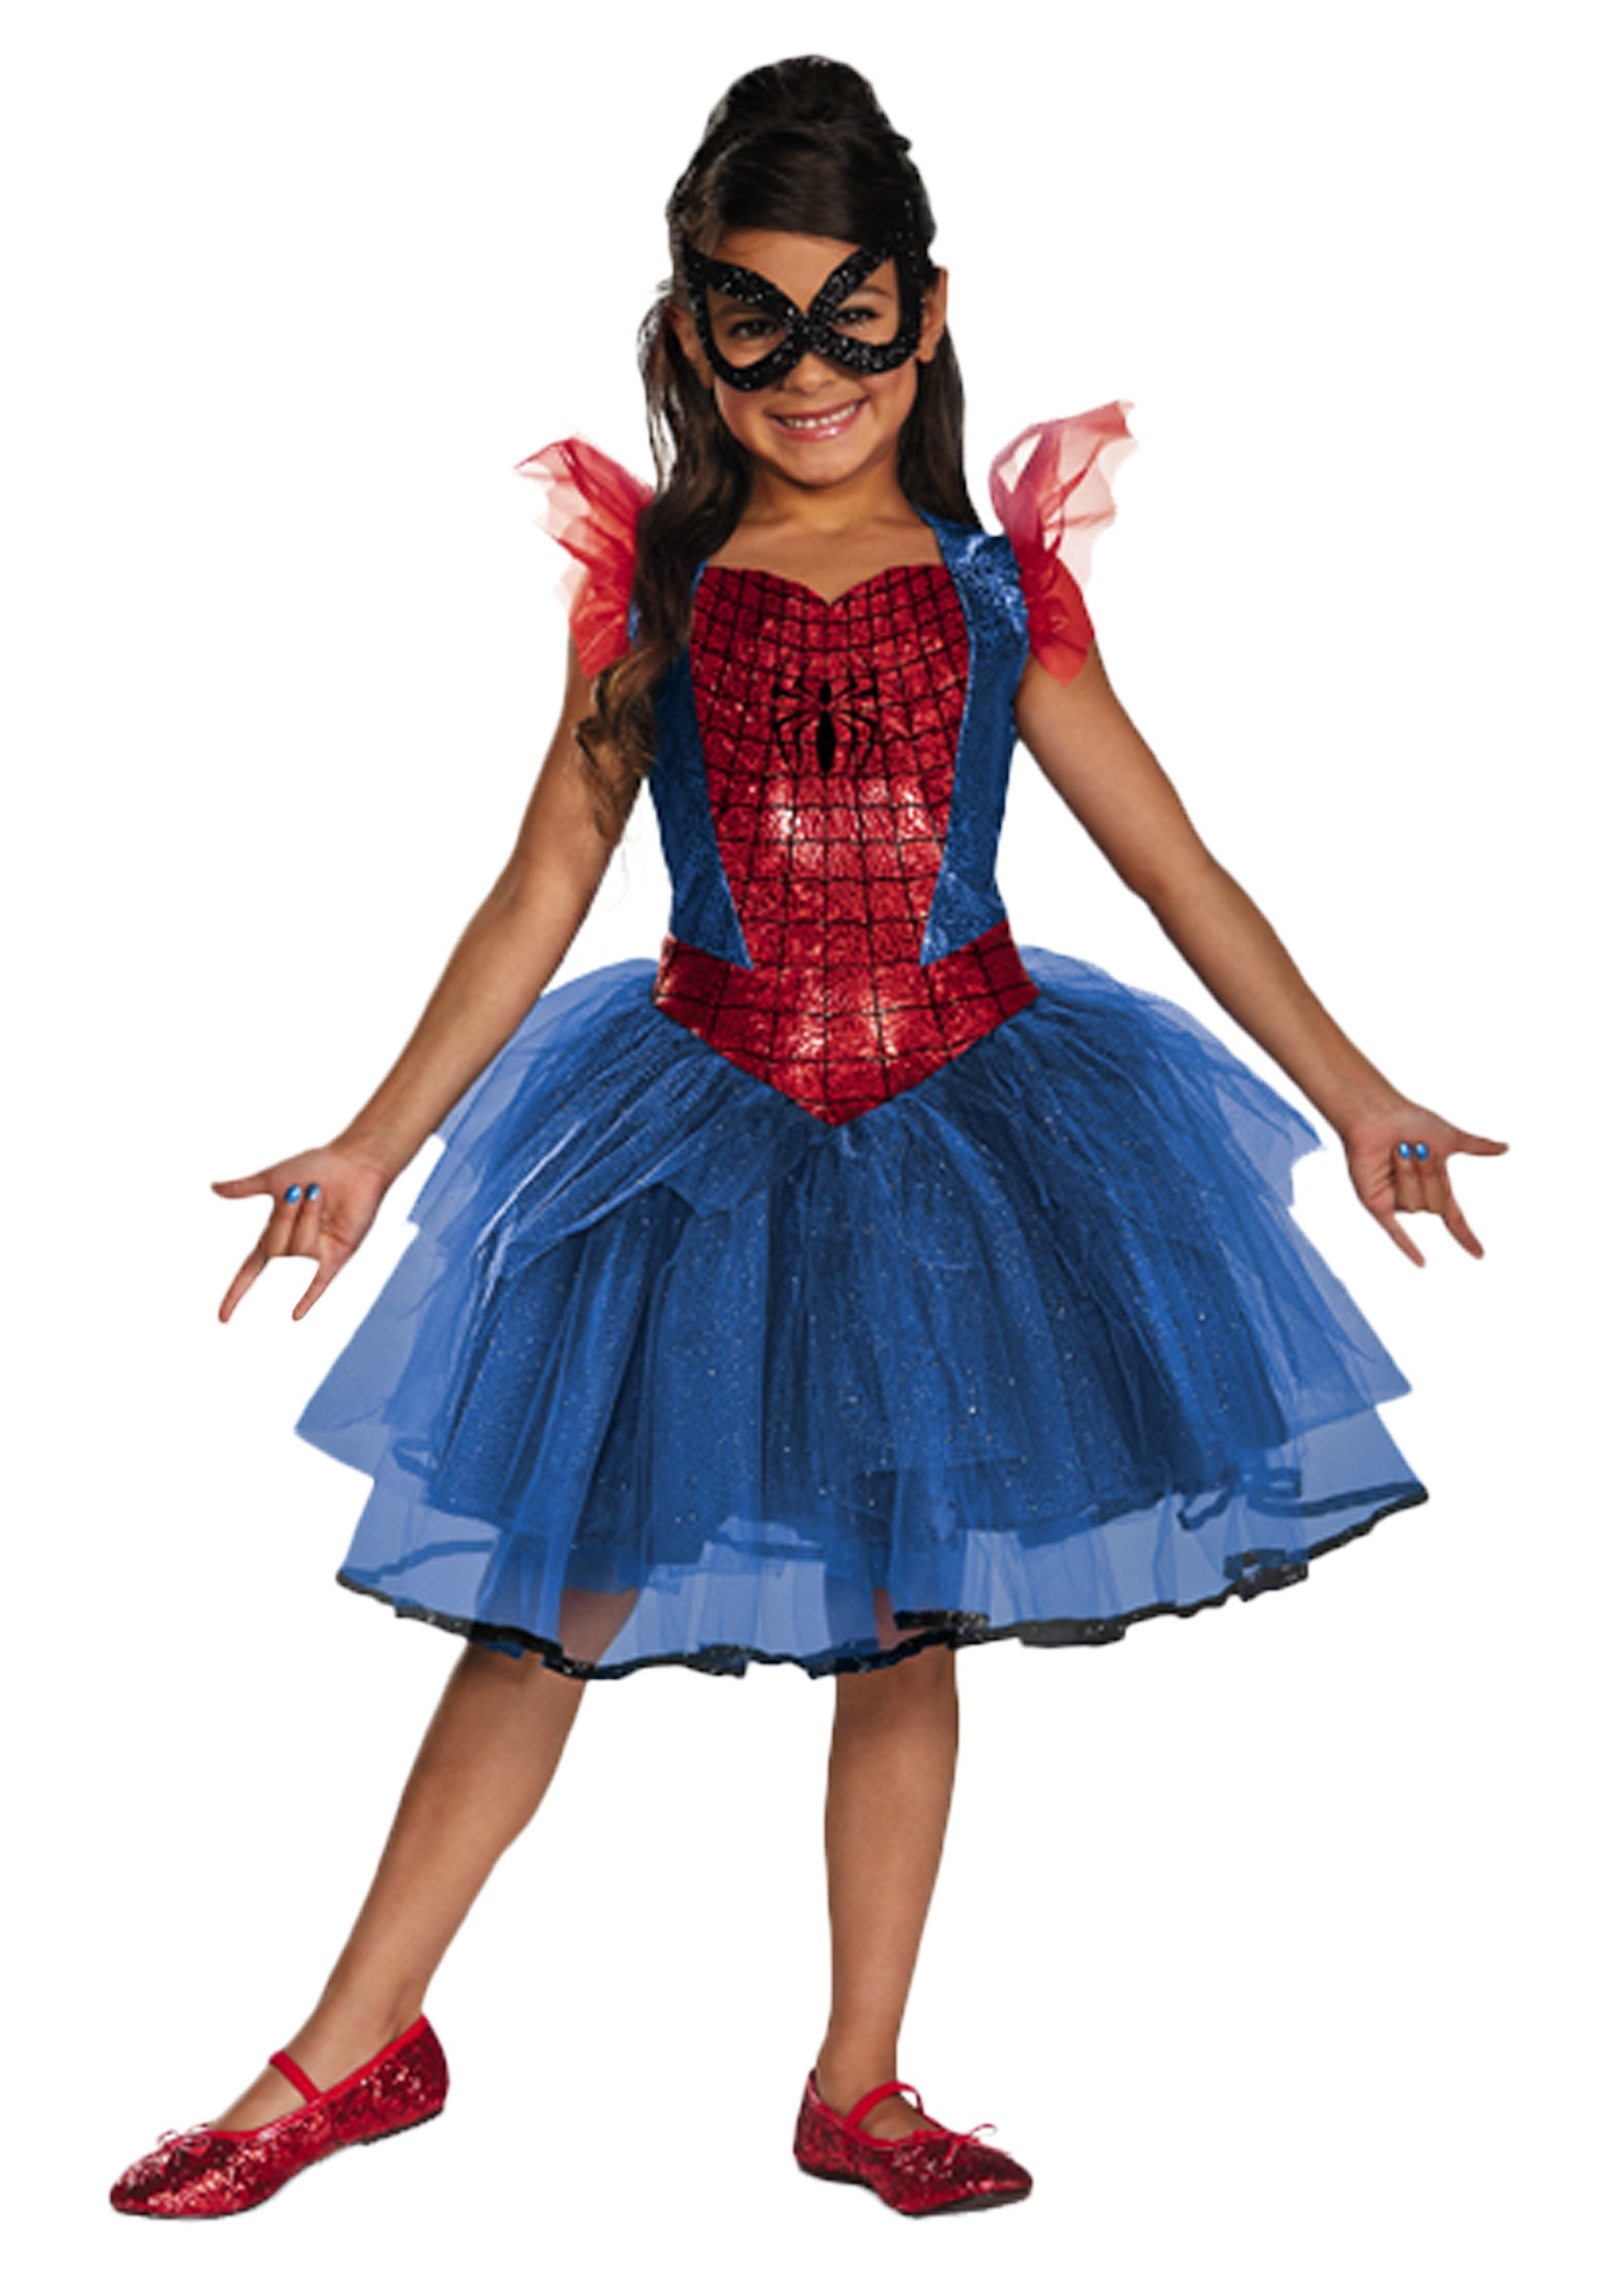 Back toGirl Costumes Kids Costumes Kids Spiderman Costumes New 2018 Costumes Spiderman Costumes Superhero Costumes Theme Costumes Toddler Costumes  sc 1 st  Halloween Costumes & Spider Girl Tutu Prestige - Halloween Costumes